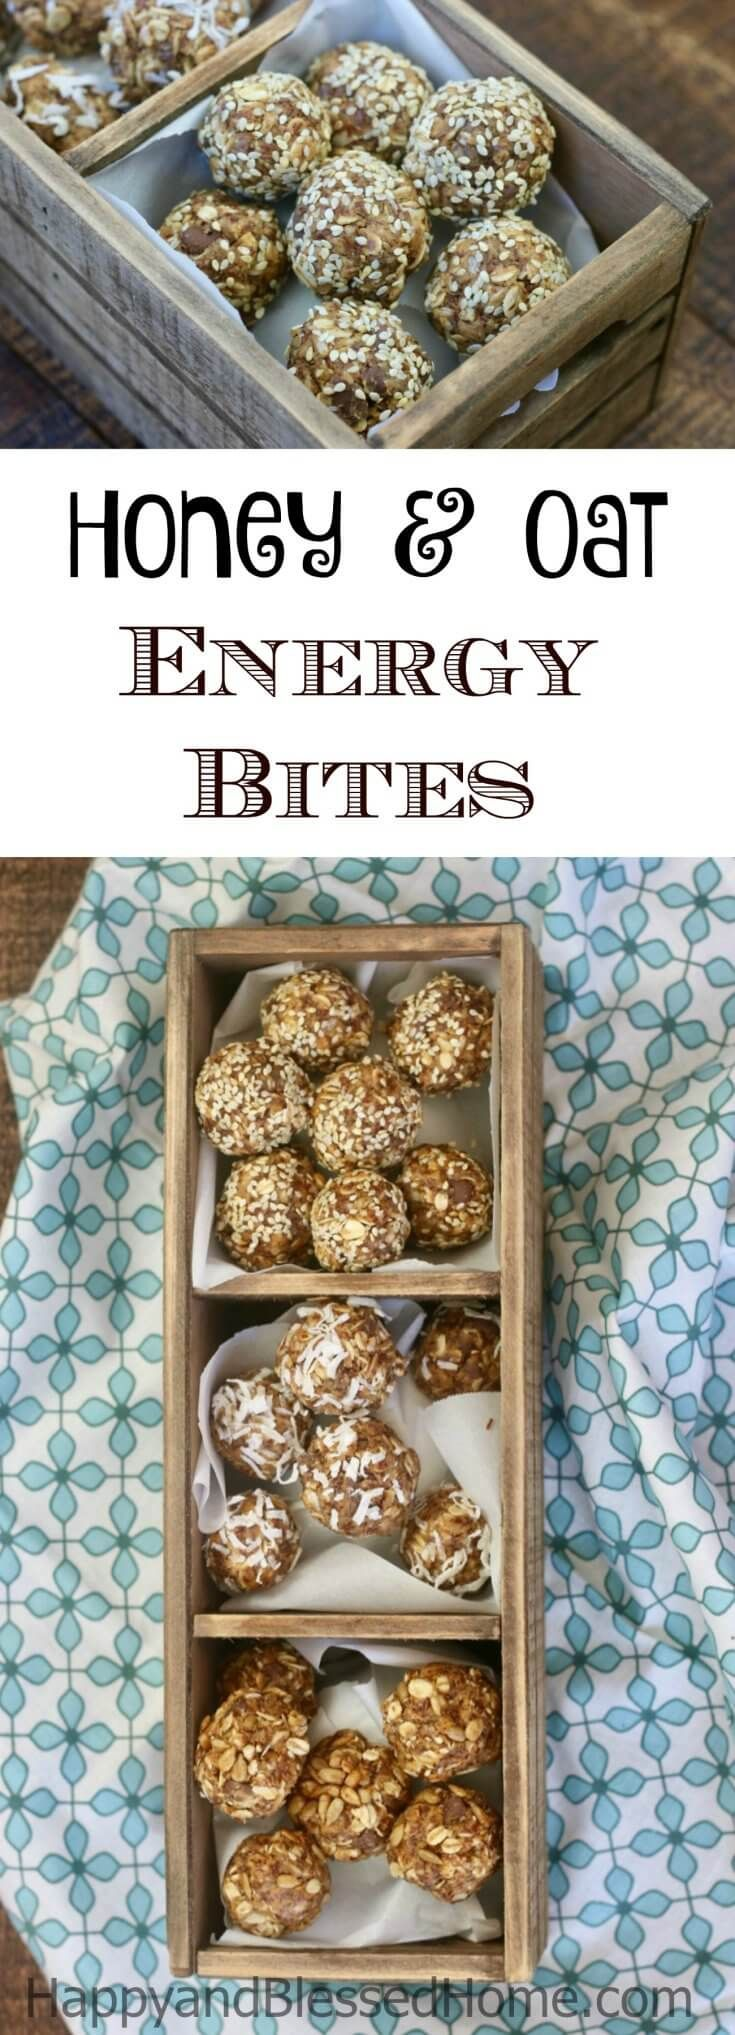 I love this easy recipe to create high-protein gluten-free delicious snacks for kids without ever turning on the stovetop or oven. This fool-proof recipe for Chocolate Chip, Peanut Butter, Honey and Oat Energy Bites is packed with protein and flavor – a perfect snack for moms too. They require no baking – just mix, roll and eat! Replace your granola bars with these for breakfast or lunch any day of the week. Ad